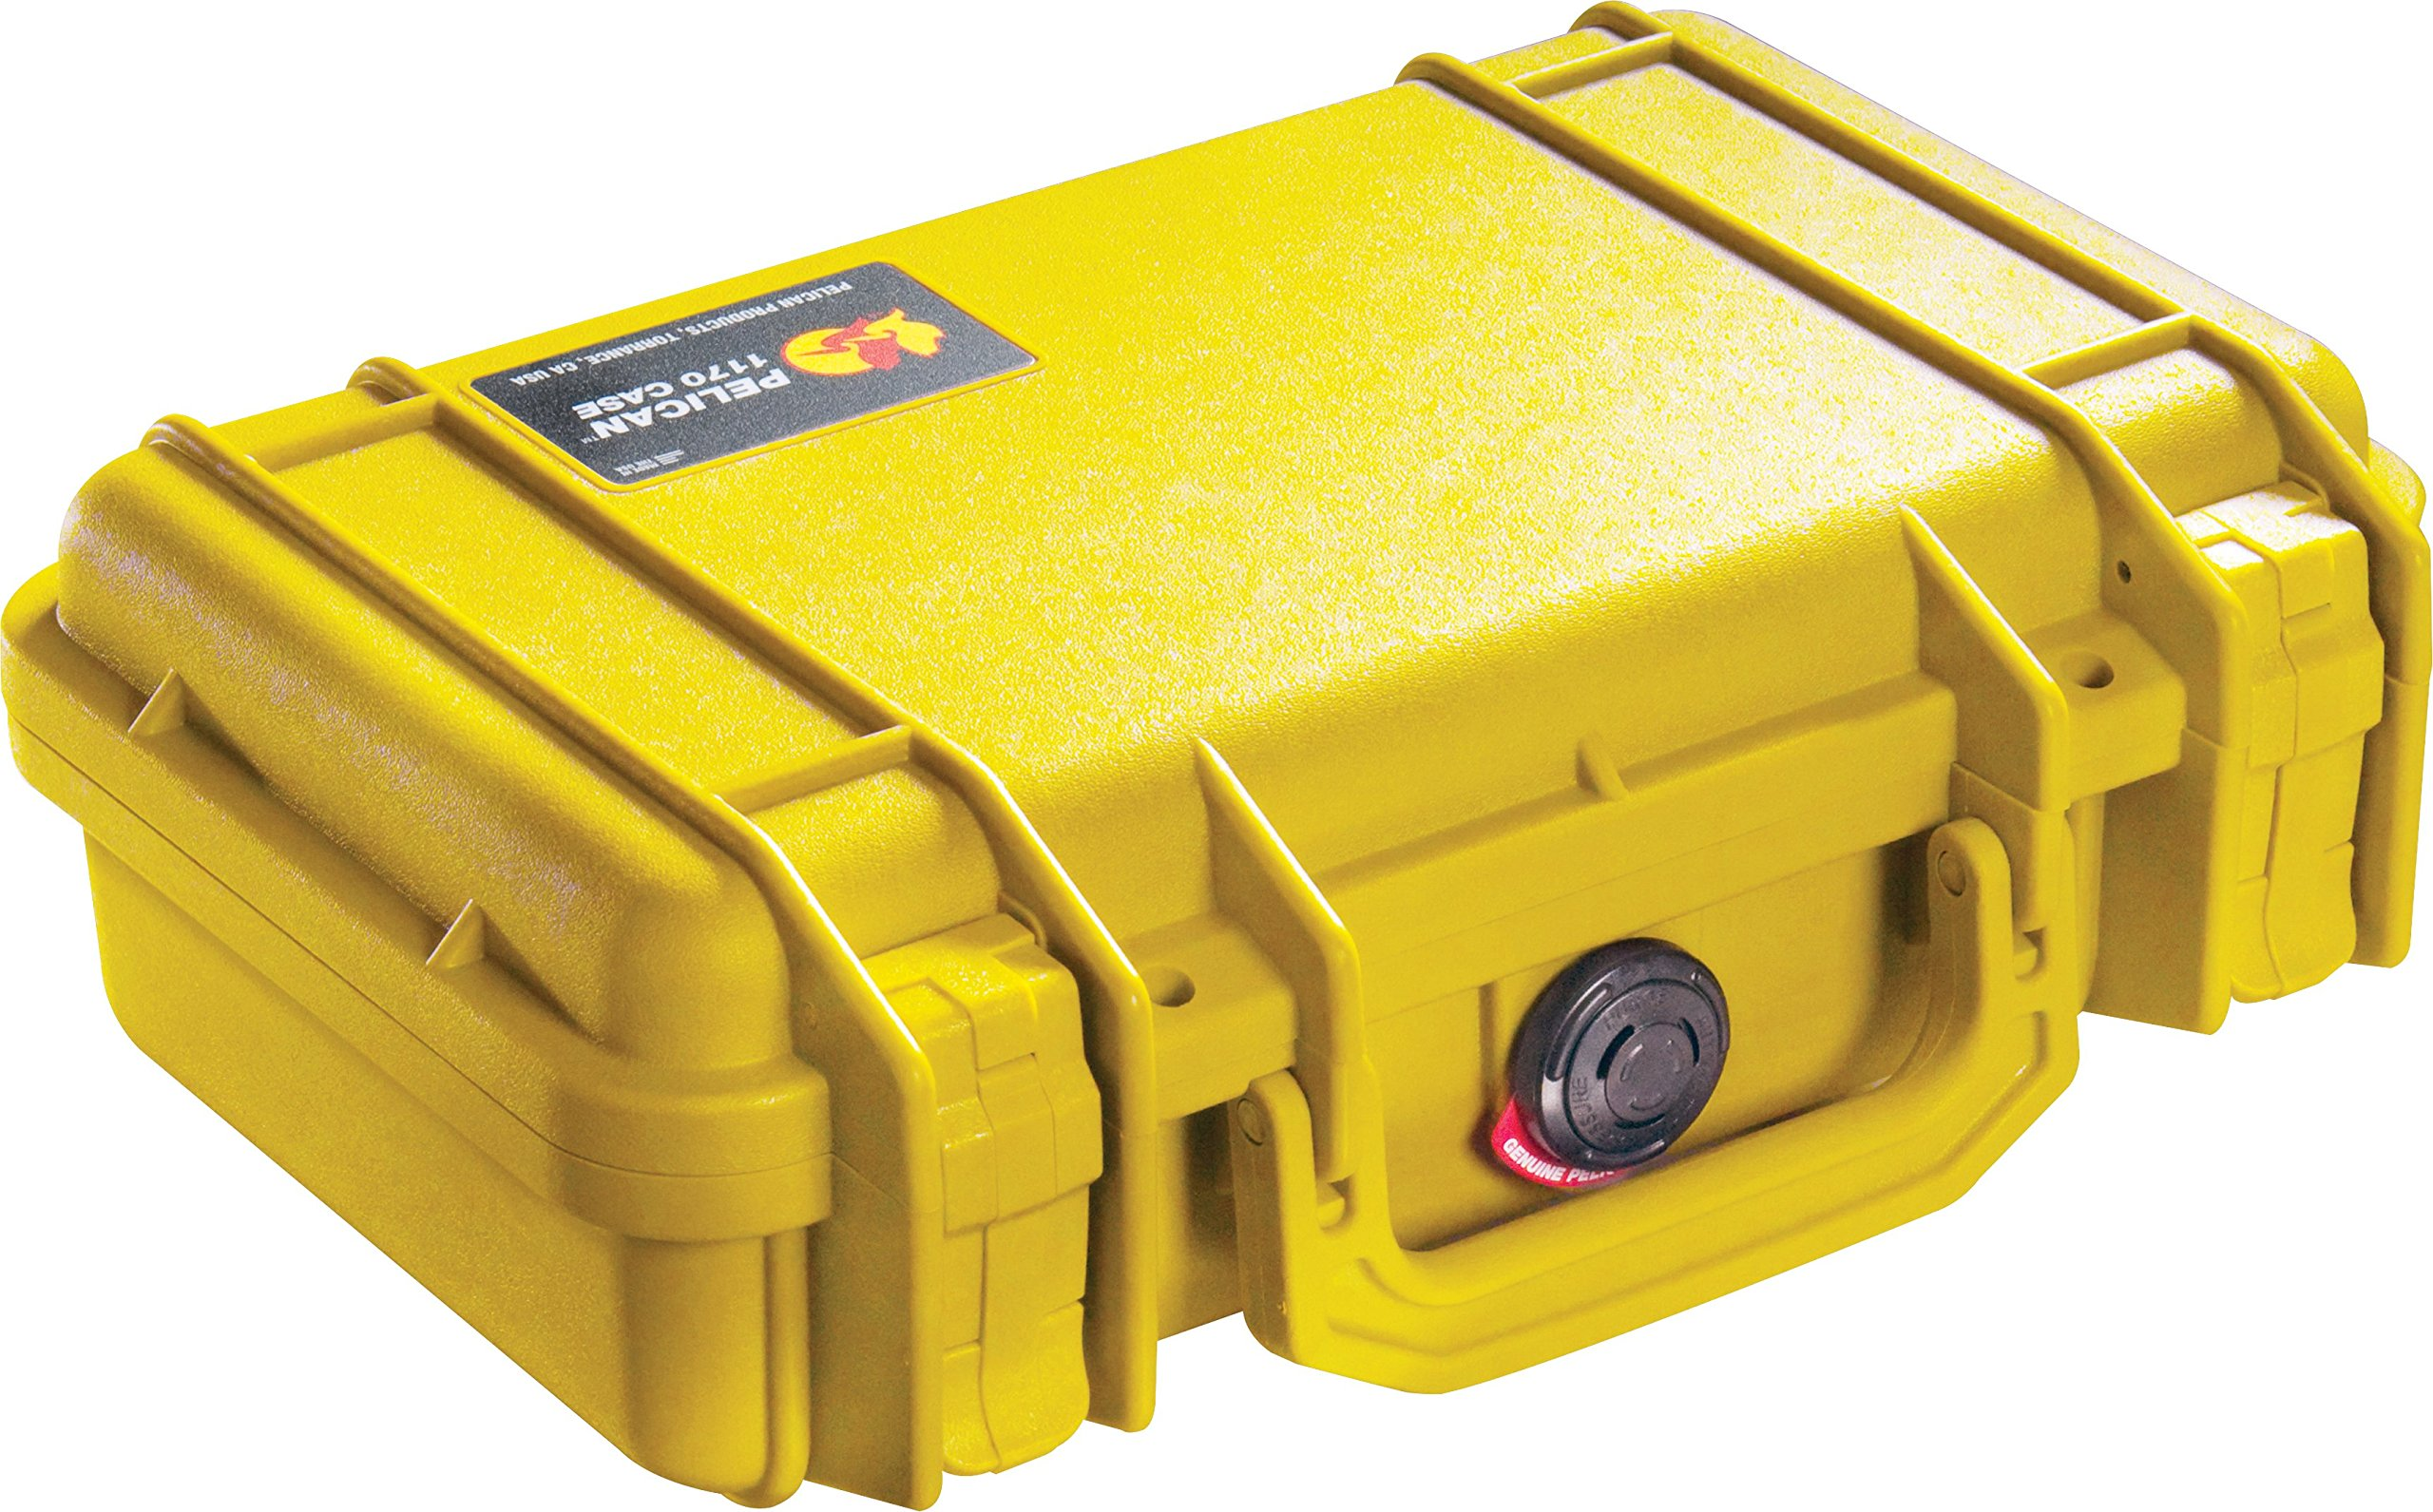 Pelican 1170 Case With Foam (Yellow) by Pelican